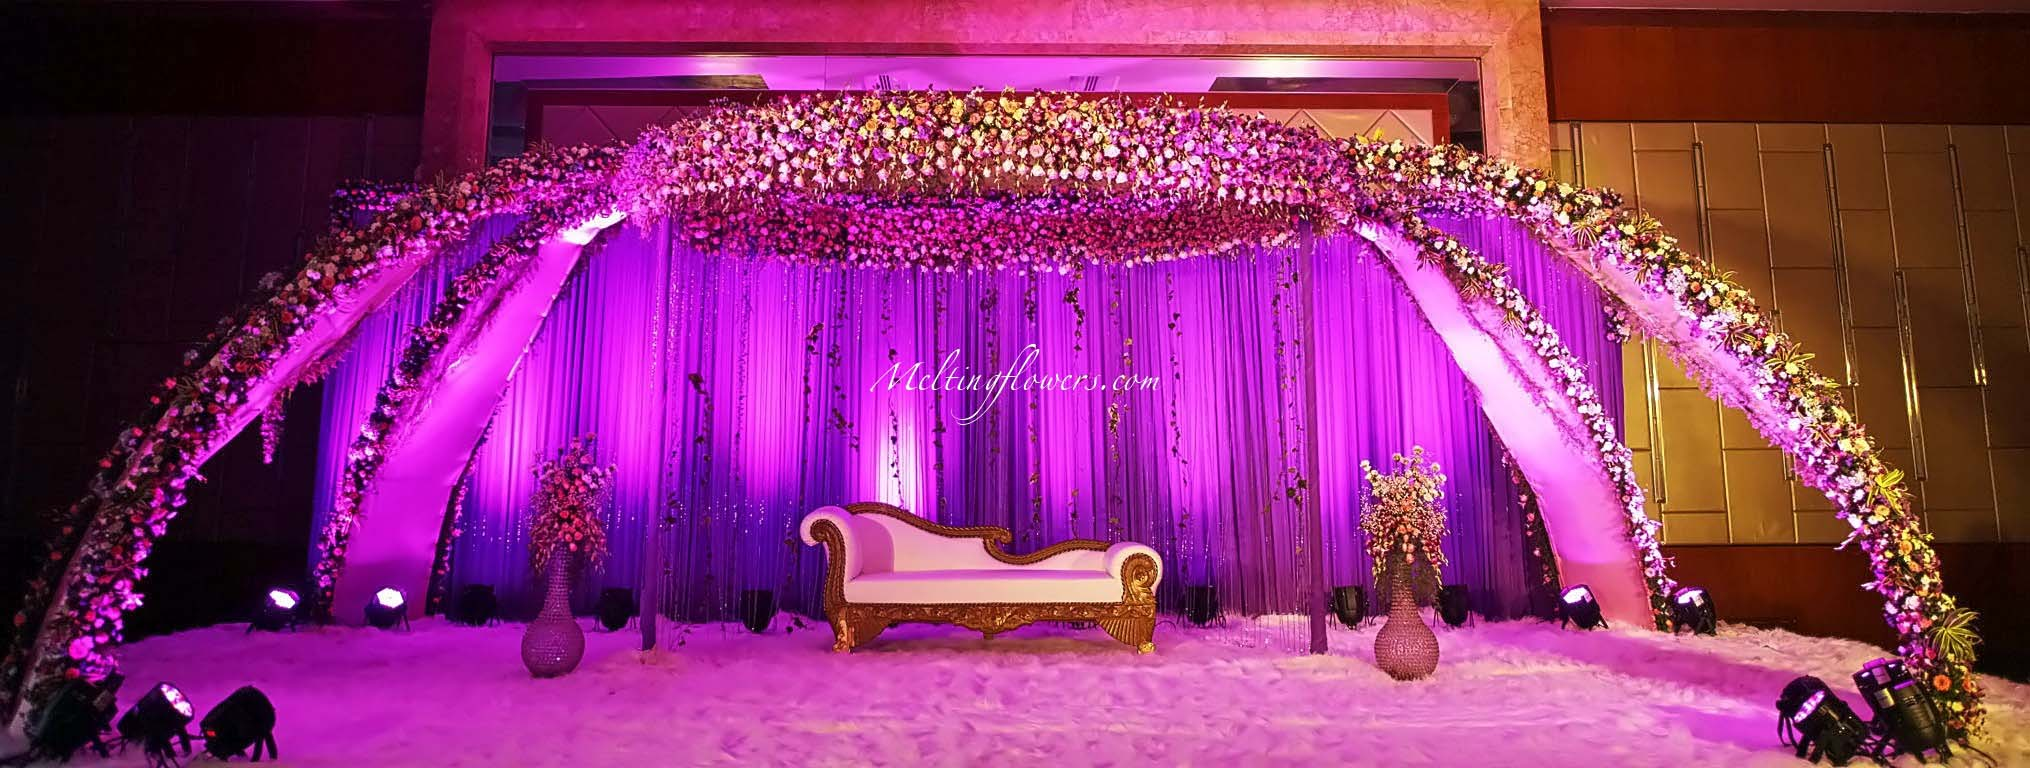 Wedding backdrops backdrop decorations melting flowers for Back ground decoration